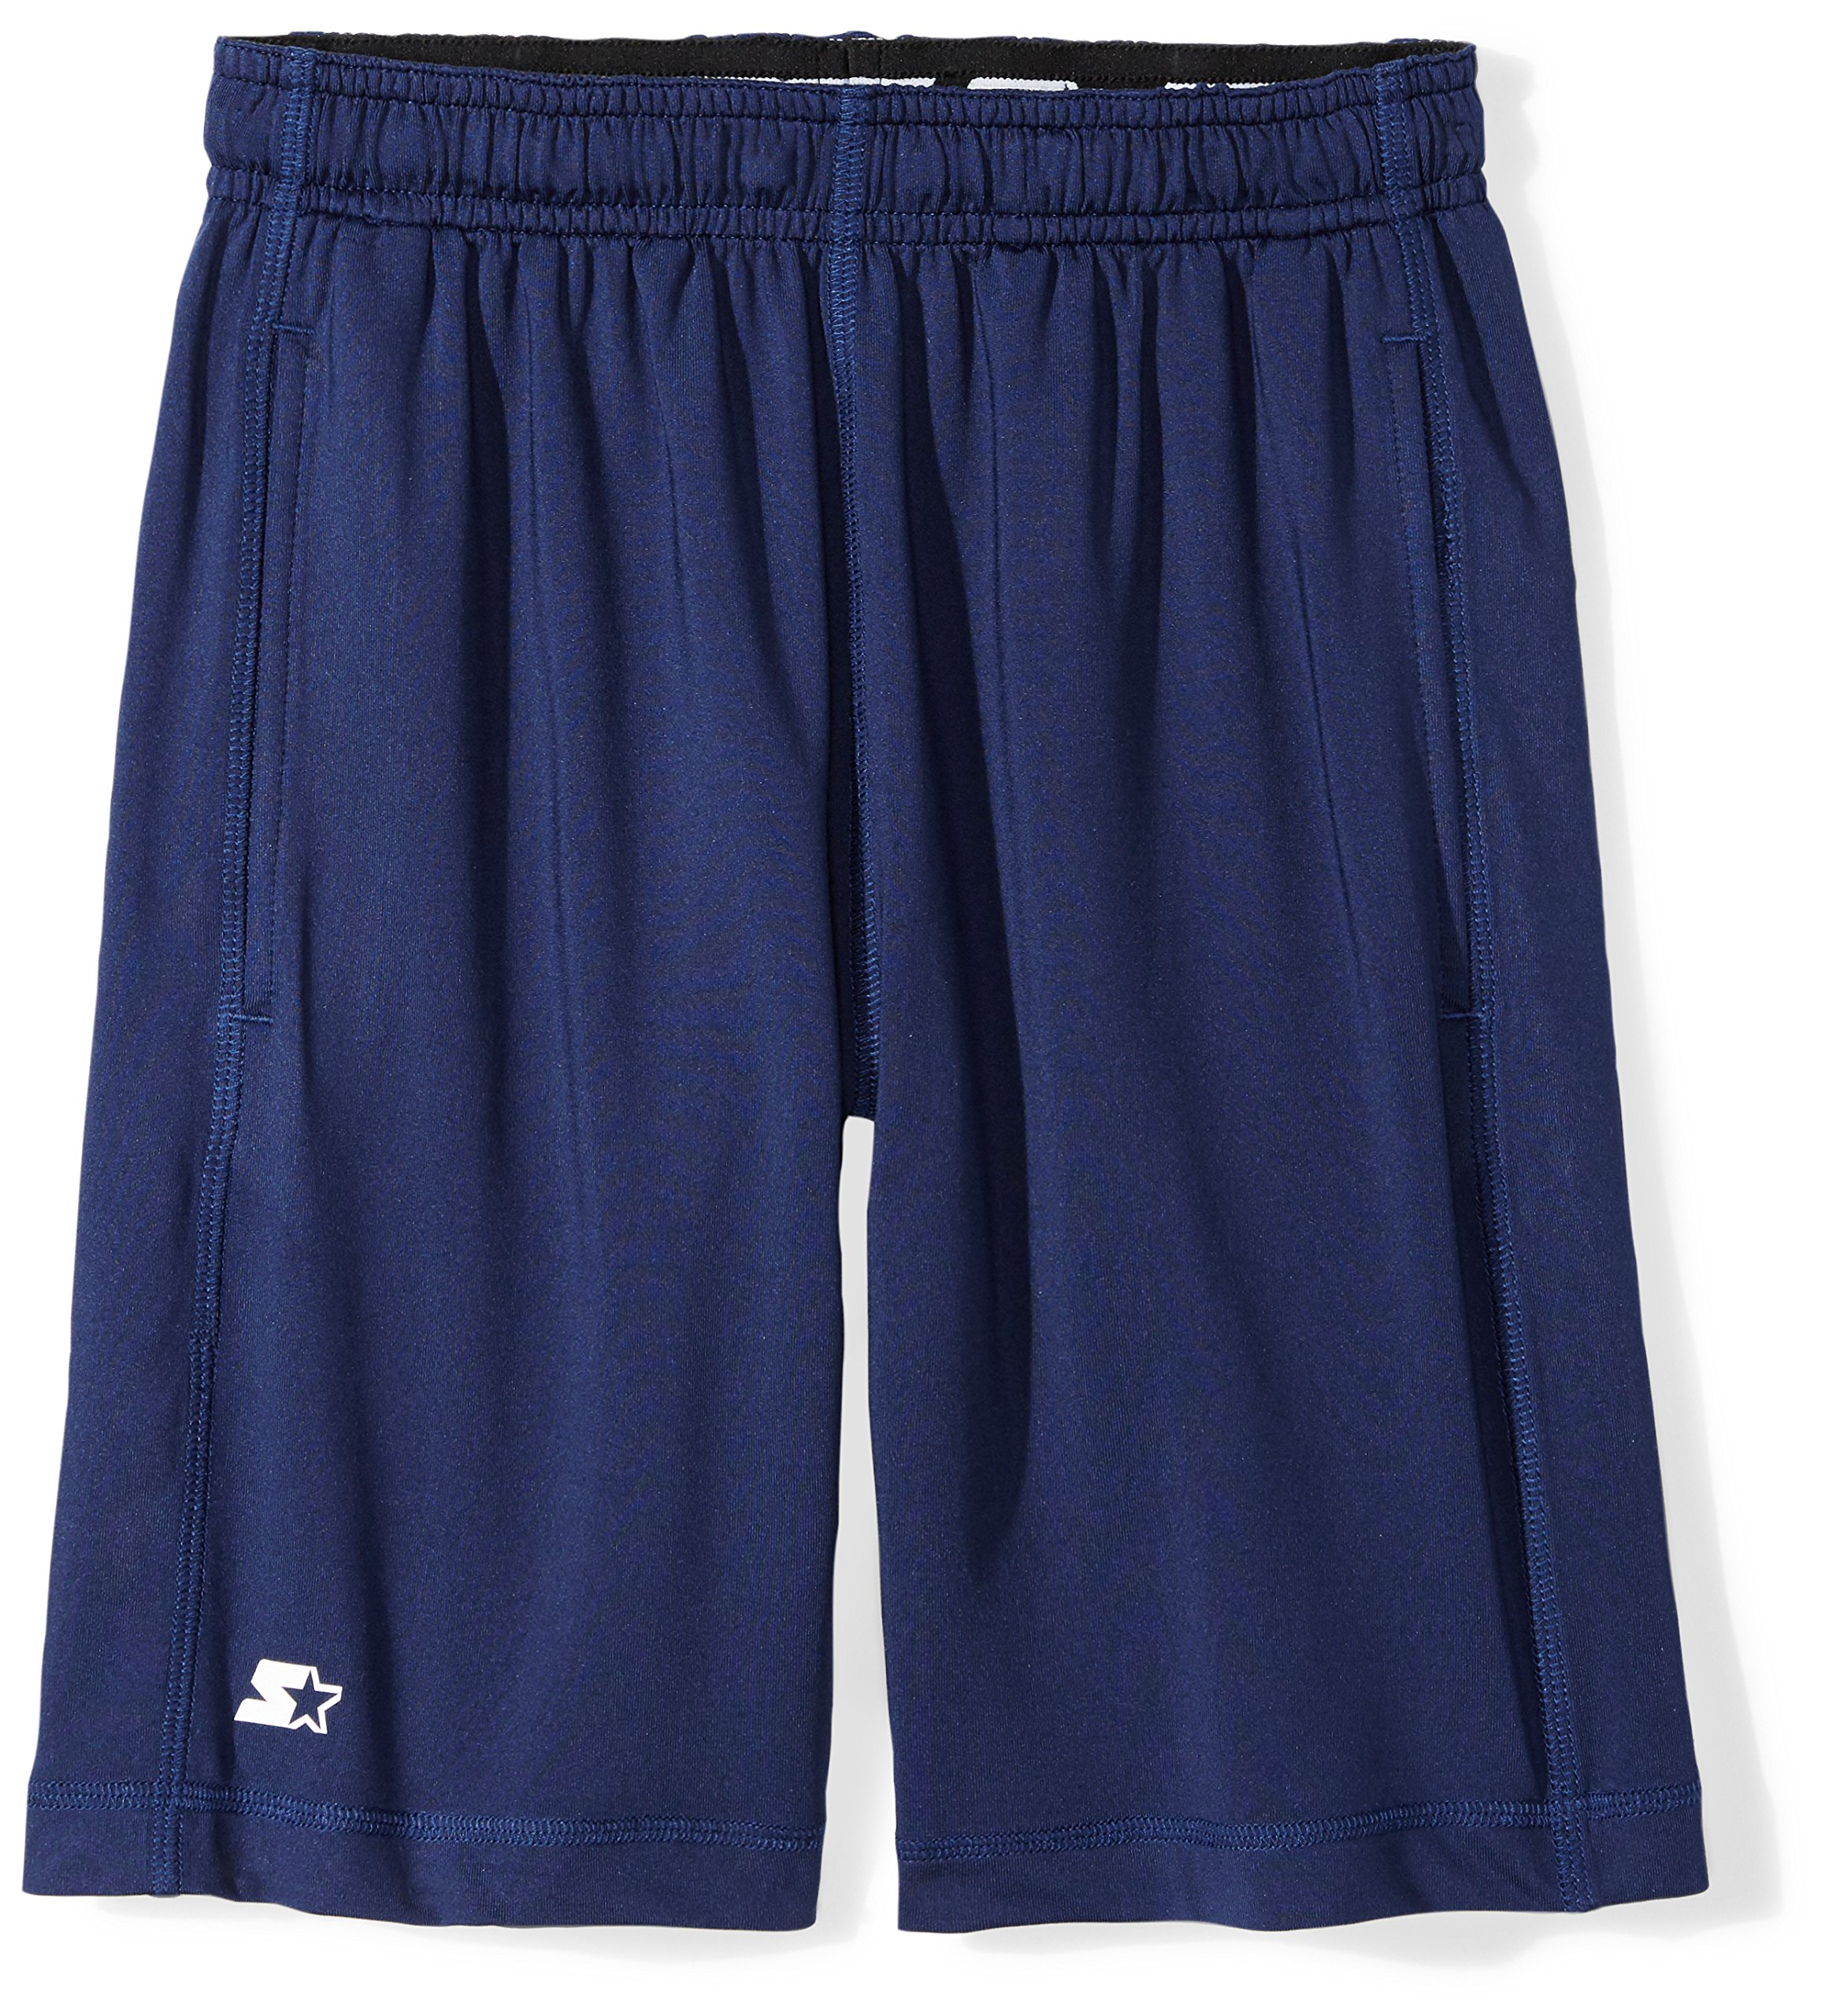 Starter Boys' 8'' Stretch Training Short Pockets, Prime Exclusive, Team Navy, XL (16/18)